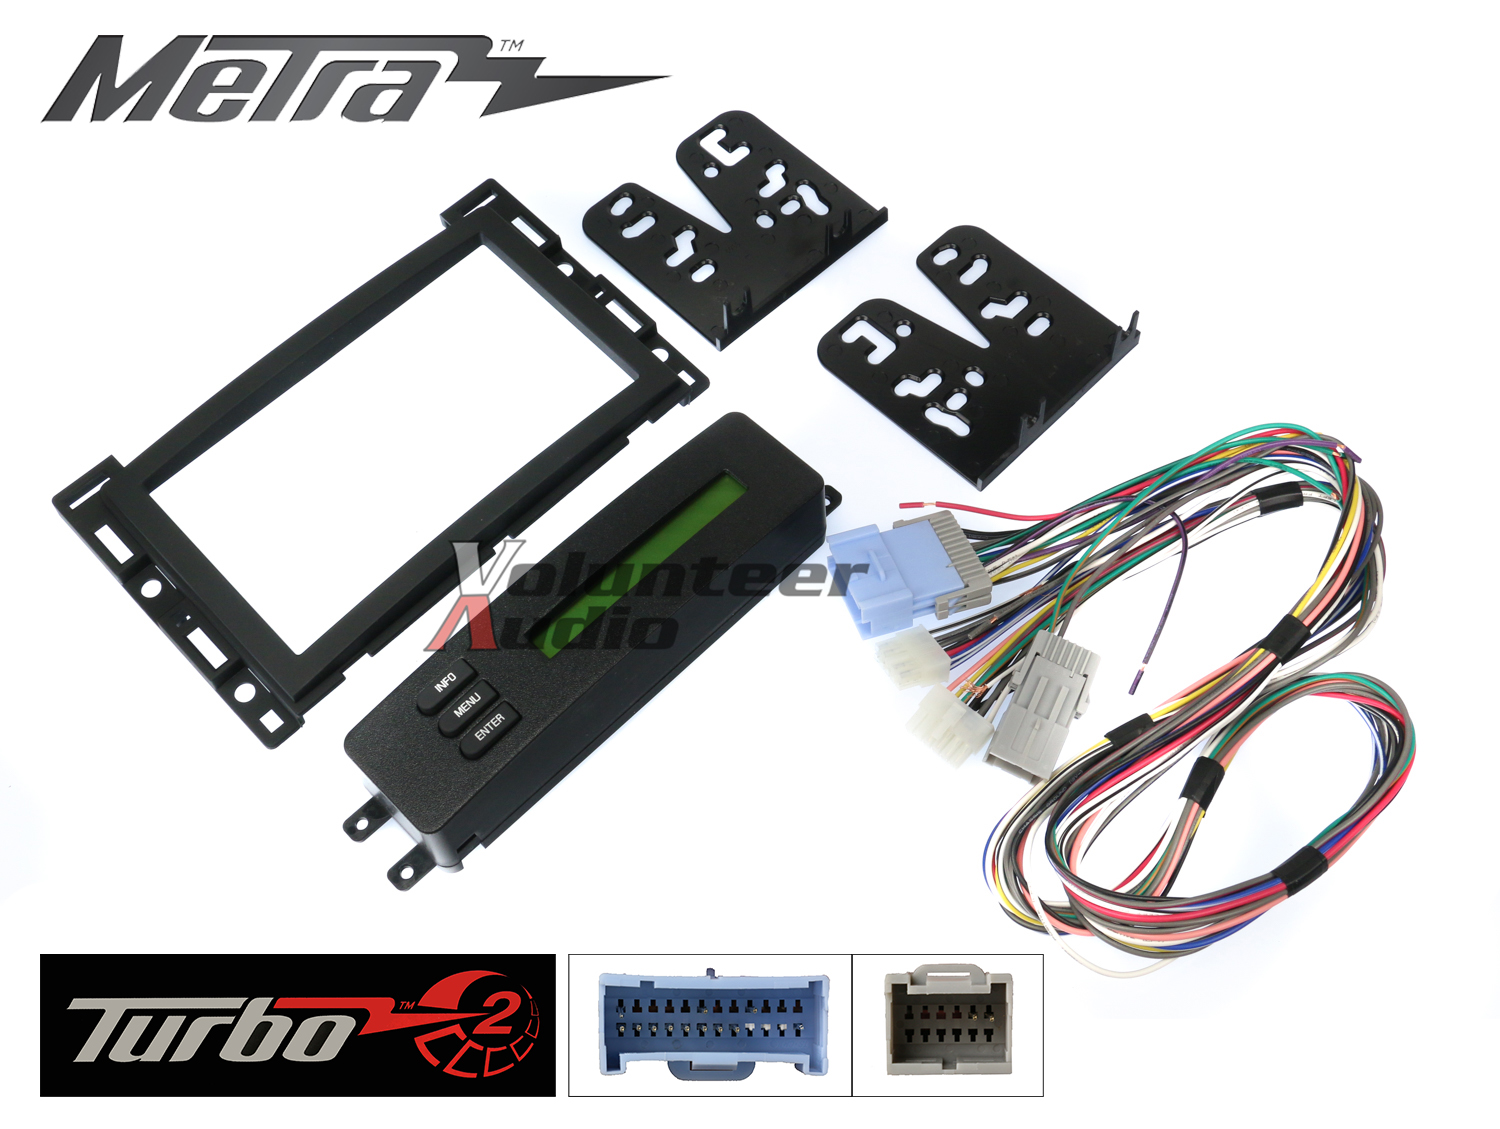 99 3303b marked1 metra 95 3303b double din stereo dash kit for chevy malibu metra 99-3303 wiring harness at nearapp.co